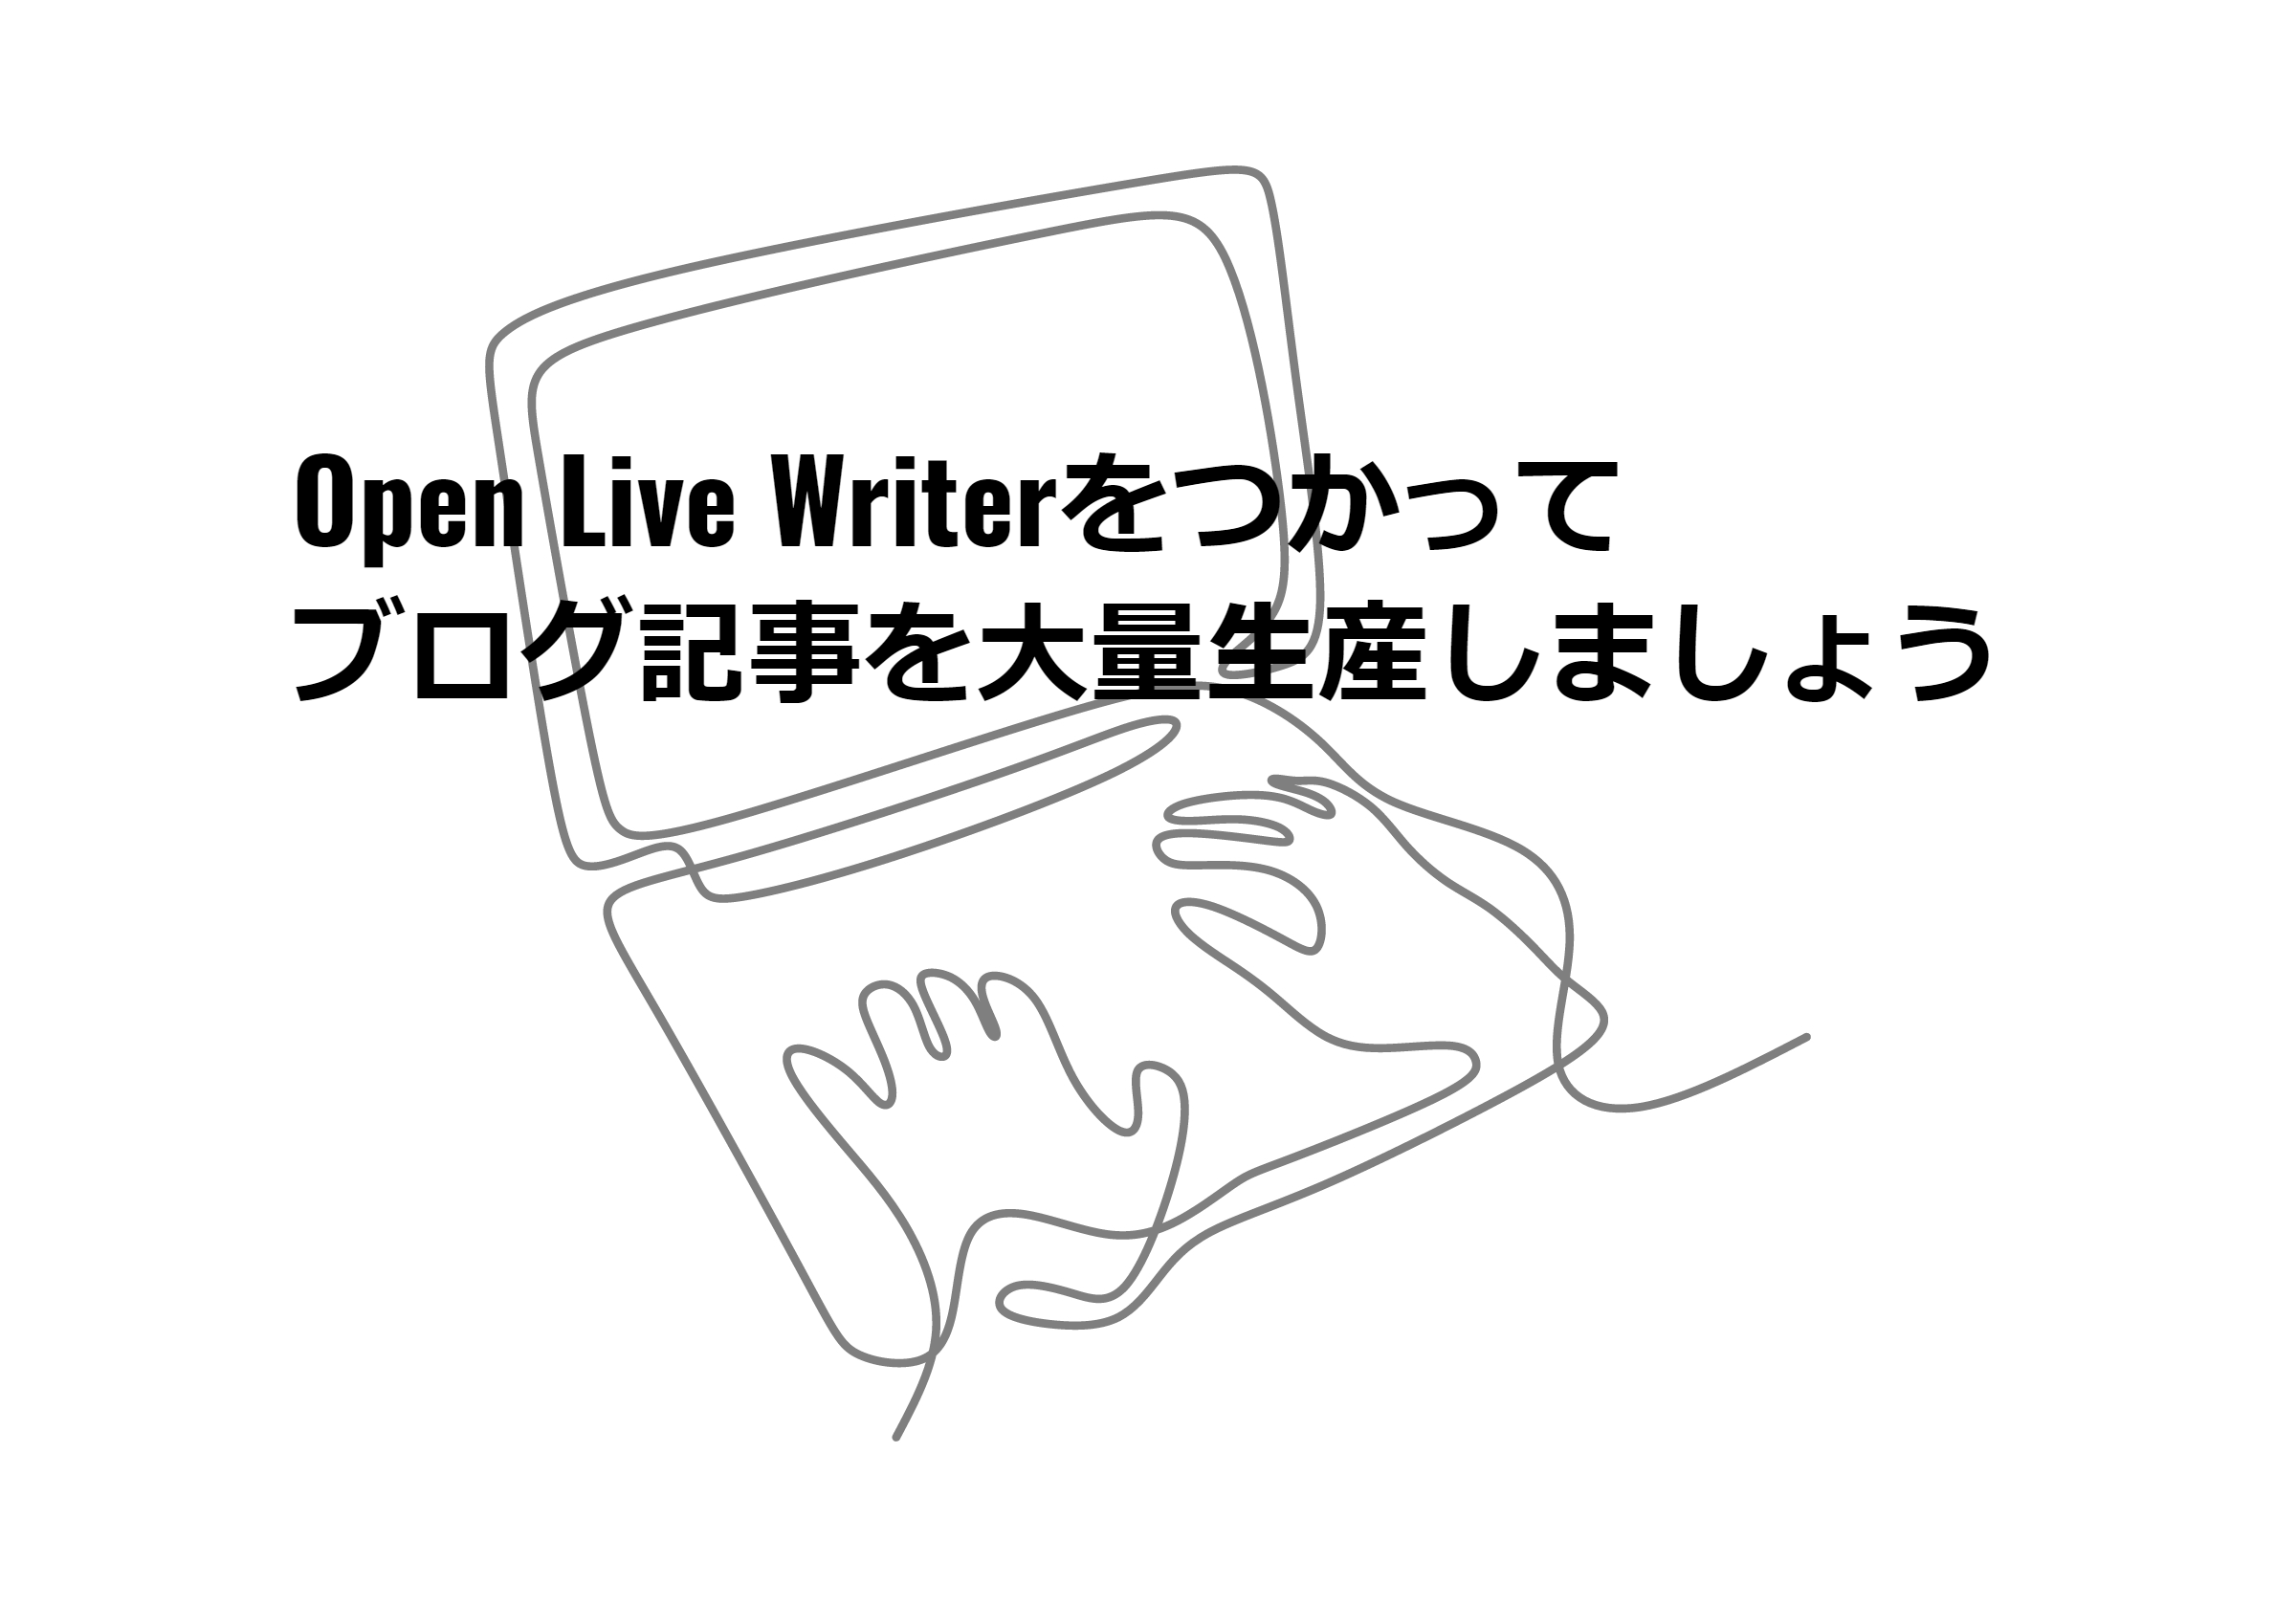 openlivewriterーブログー生産